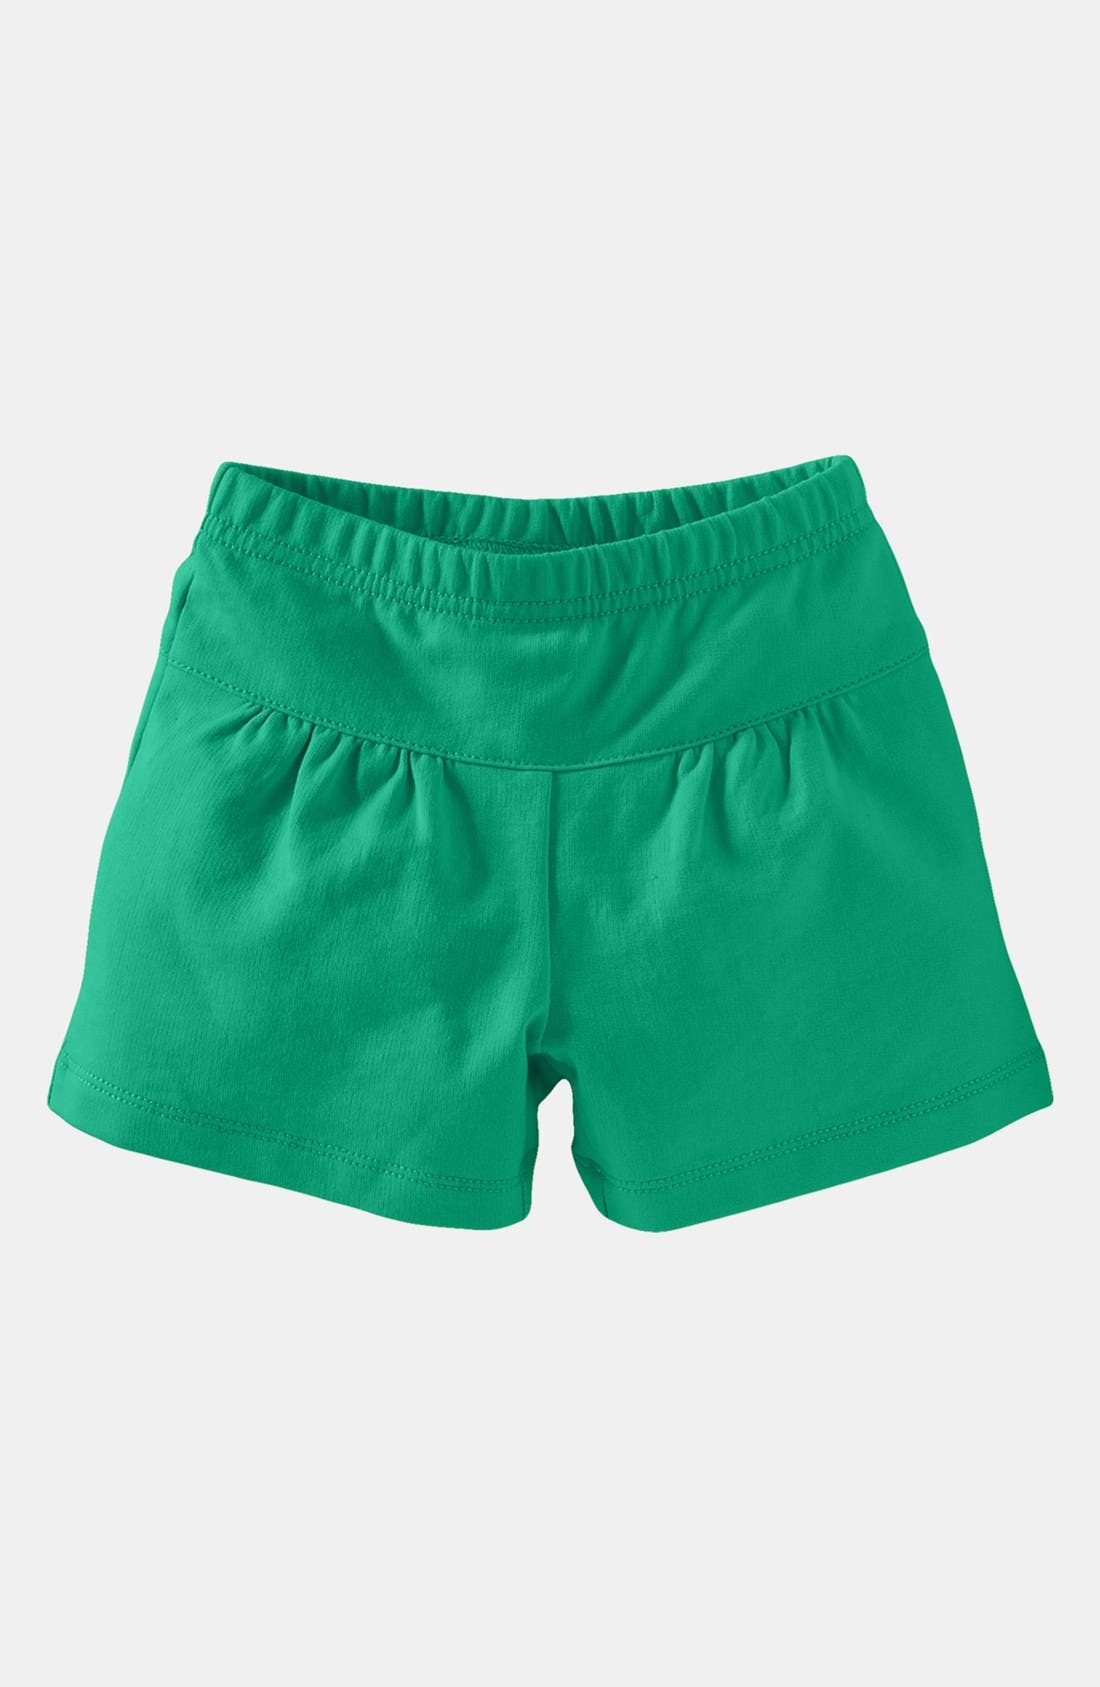 Alternate Image 1 Selected - Tea Collection French Terry Play Shorts (Little Girls & Big Girls)(Online Only)